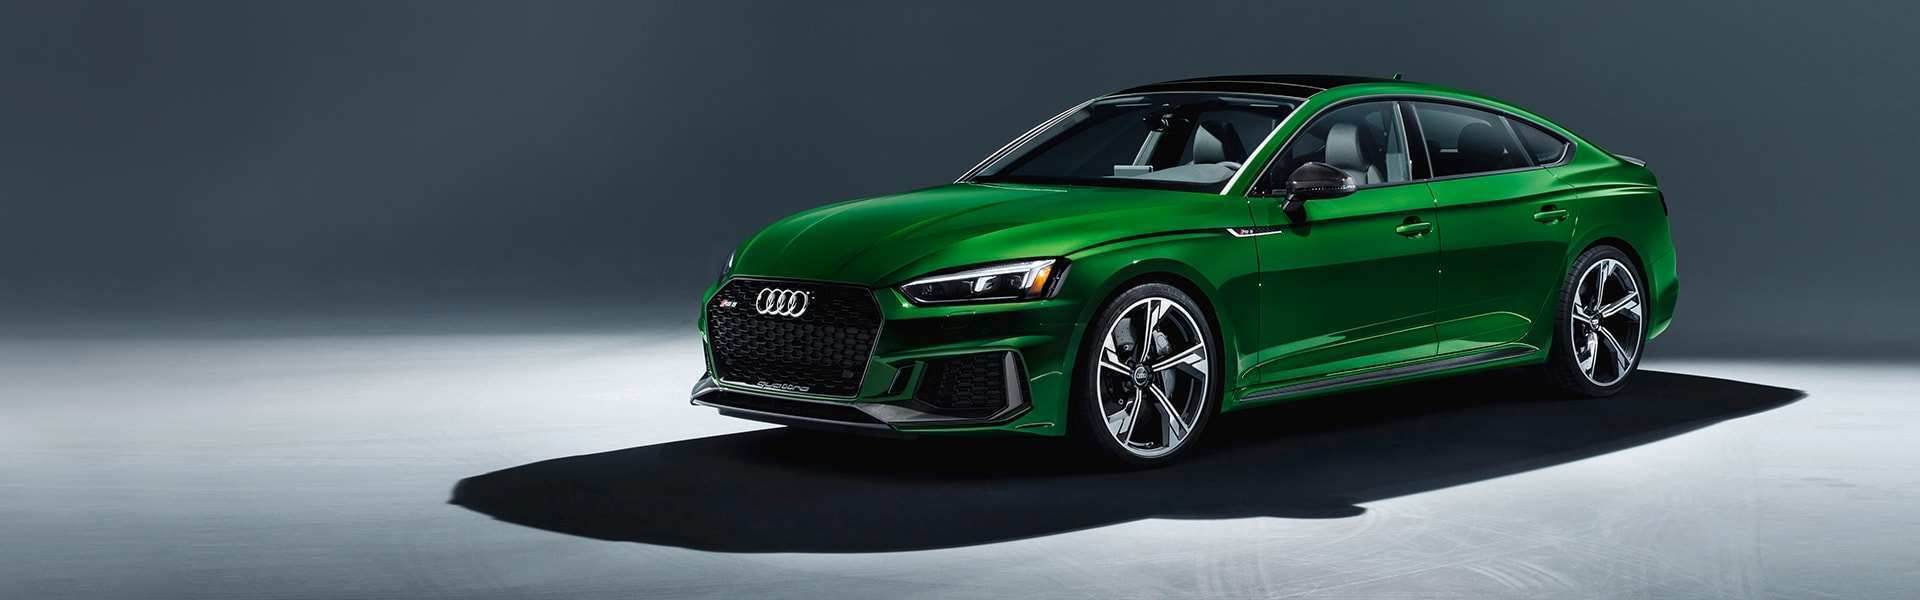 72 Best Review 2019 Audi Canada History for 2019 Audi Canada